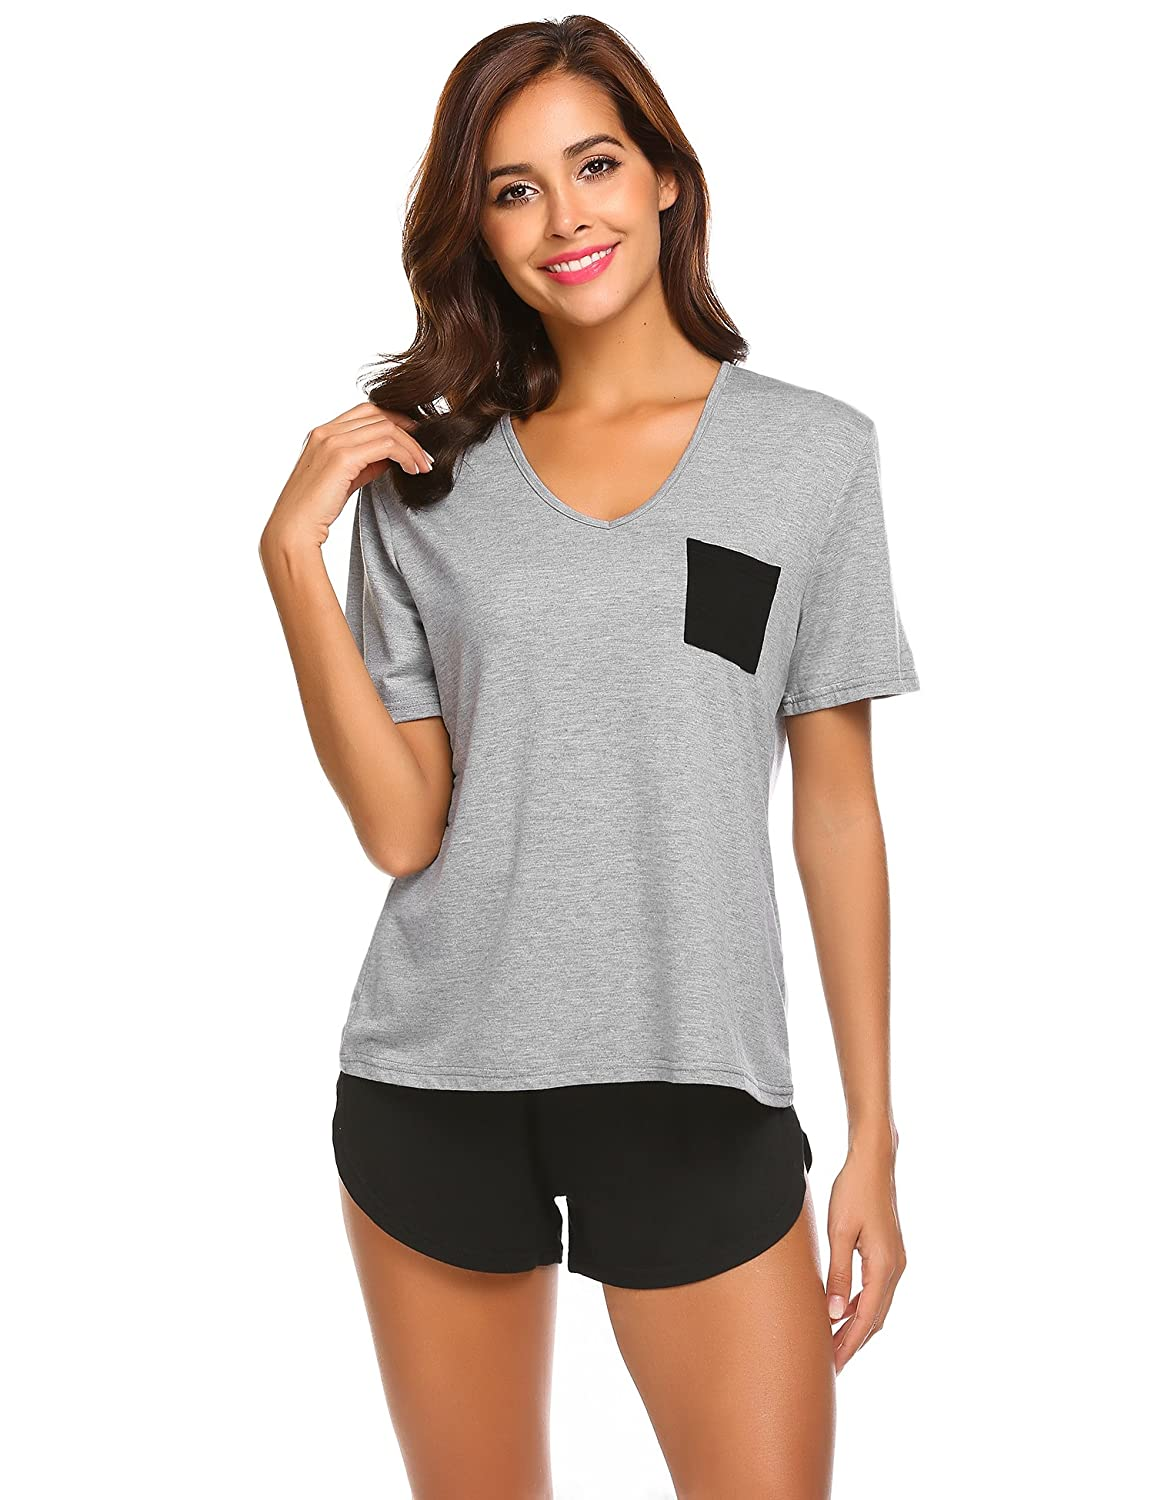 Alight Grey Luxilooks Pajama Set, Lounge Shorts Set Short Sleeves Nightgown Top and Pants Pj Sets 2Piece Sleepwear